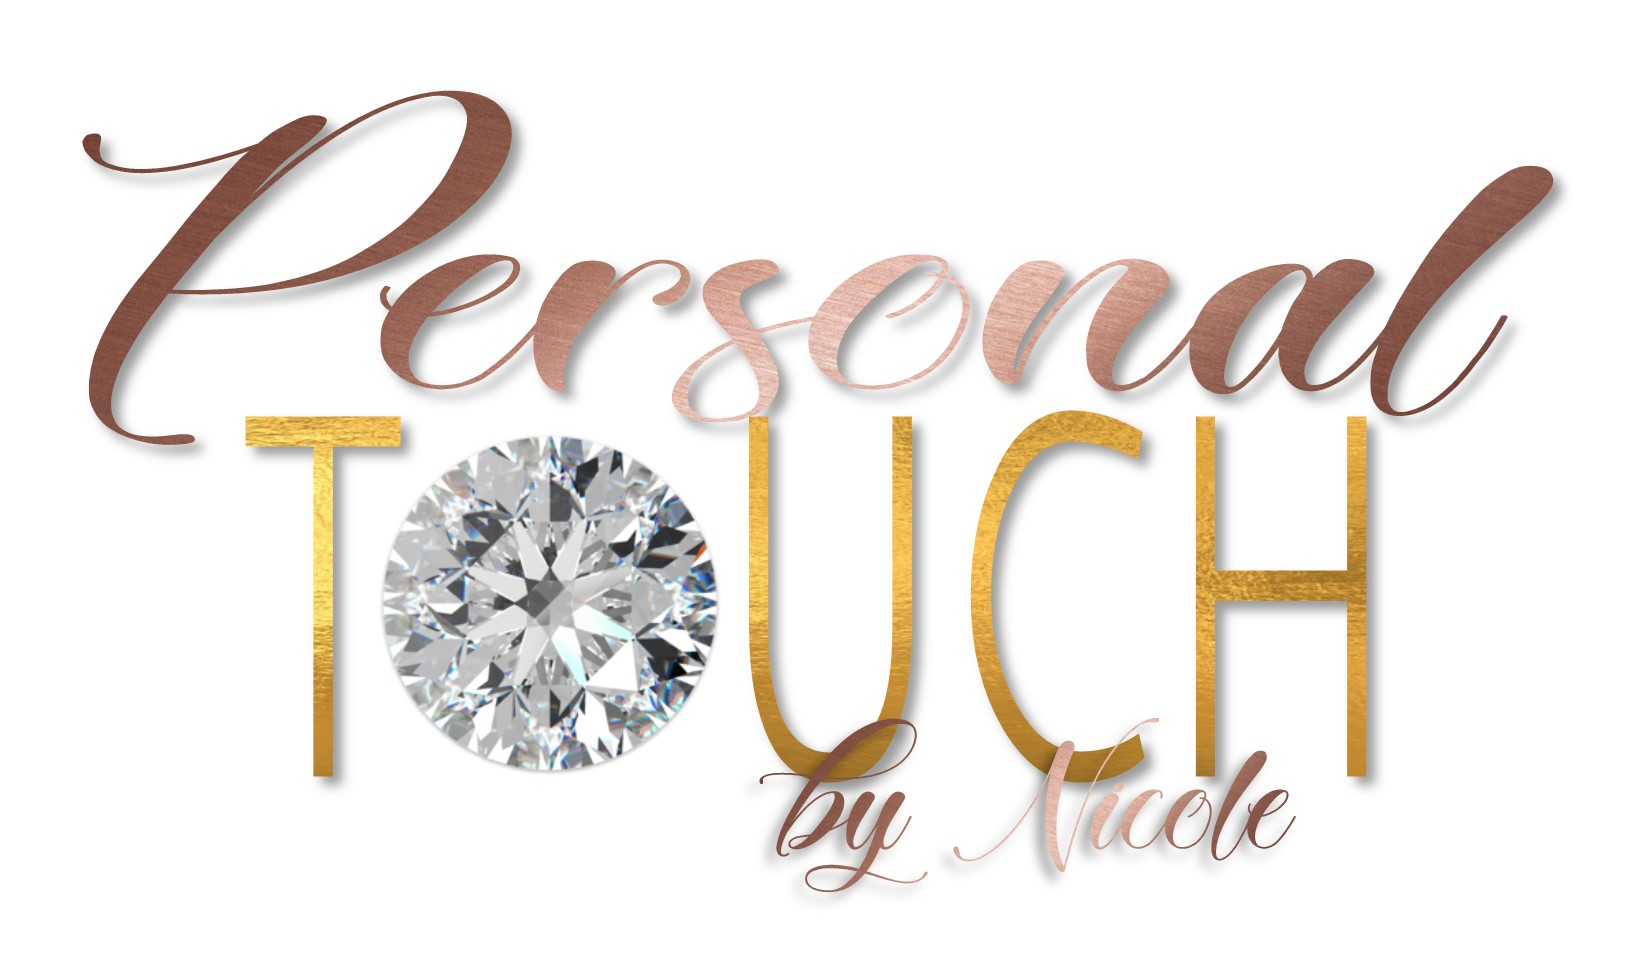 Personal Touch by Nicole white